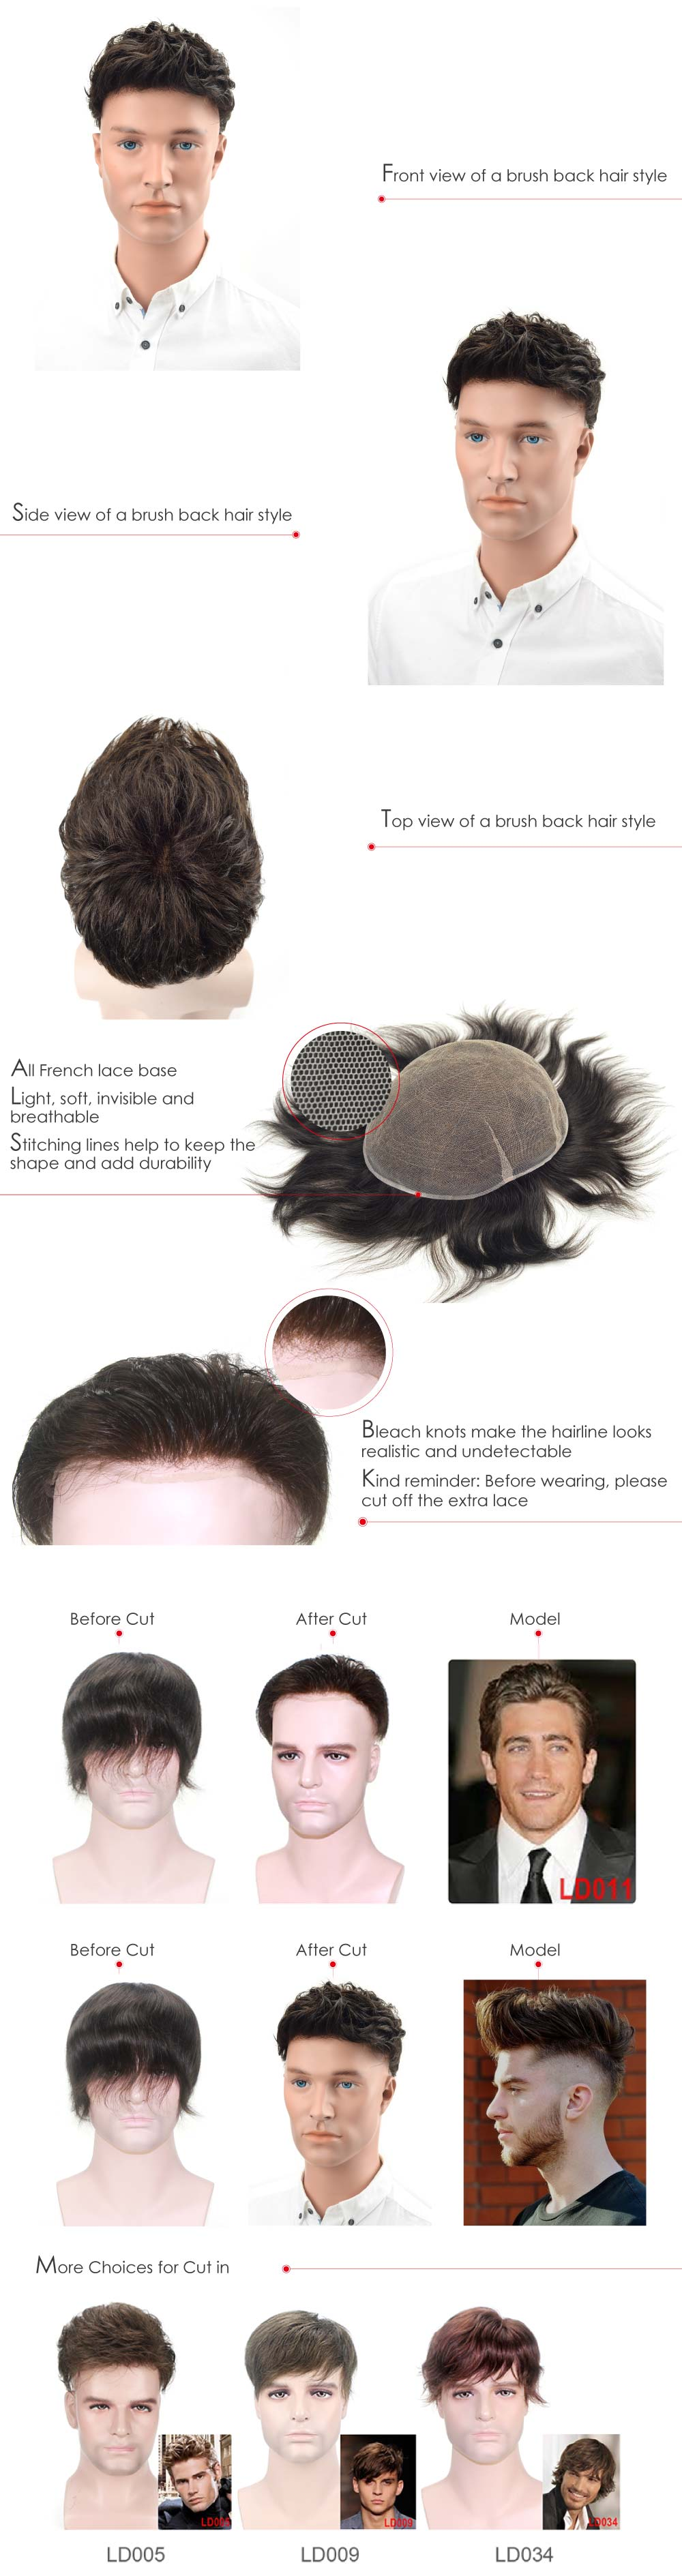 French Lace Hair System from Lordhair